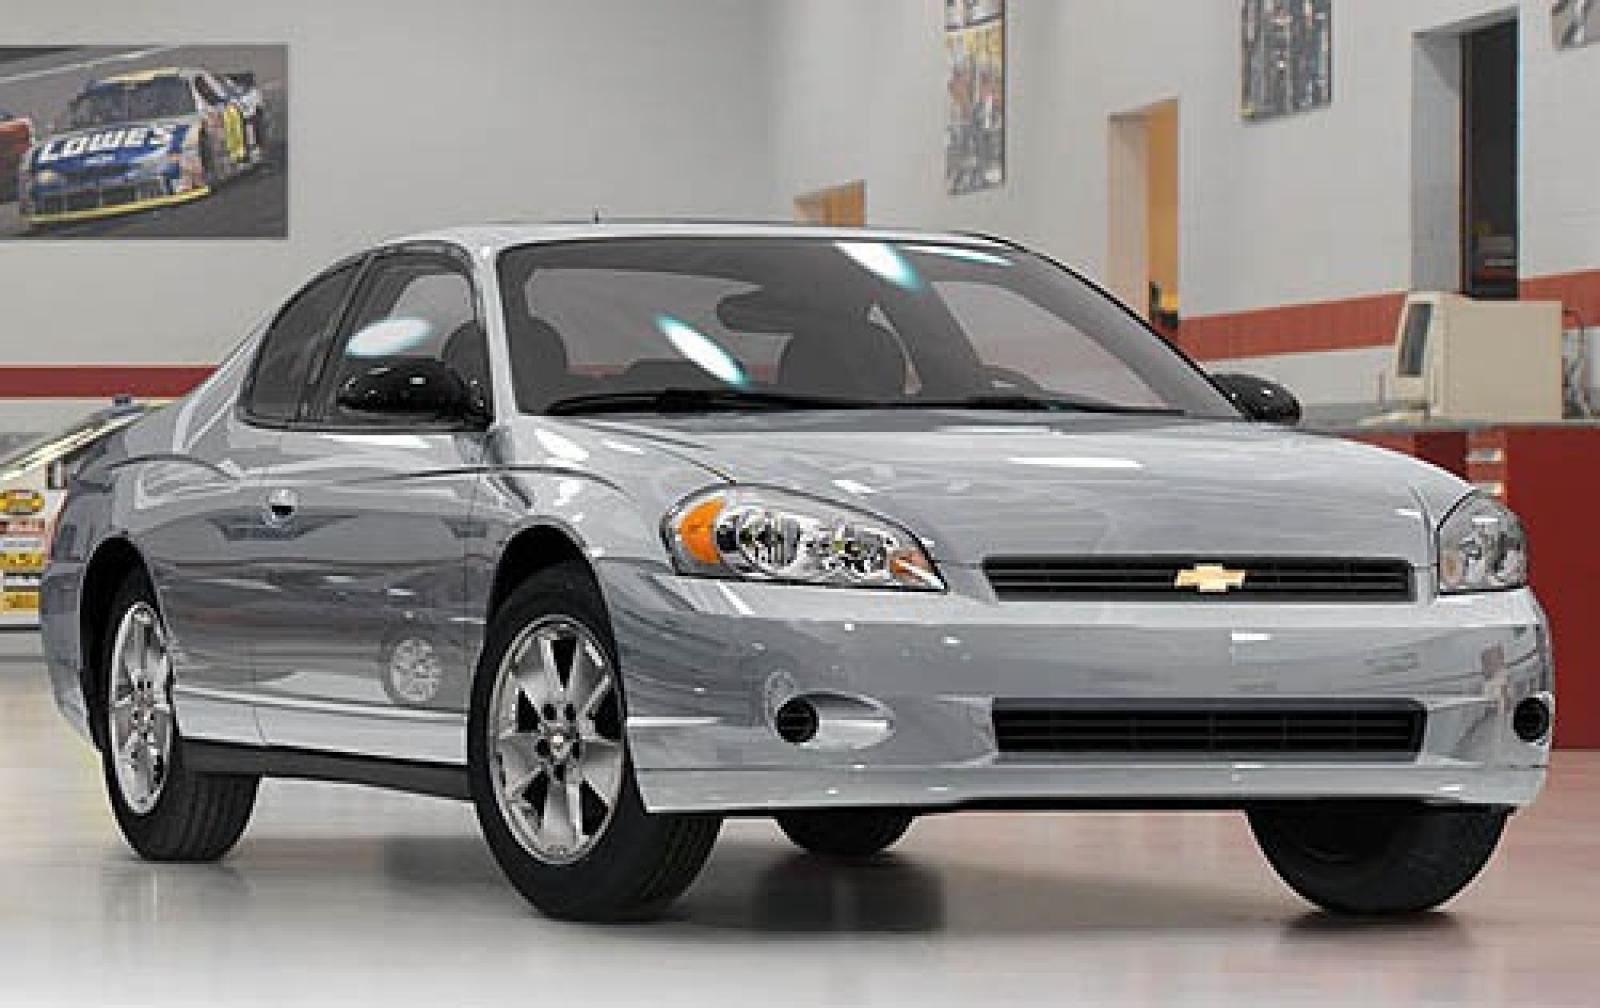 2007 Chevrolet Monte Carlo - Information and photos - Zomb Drive